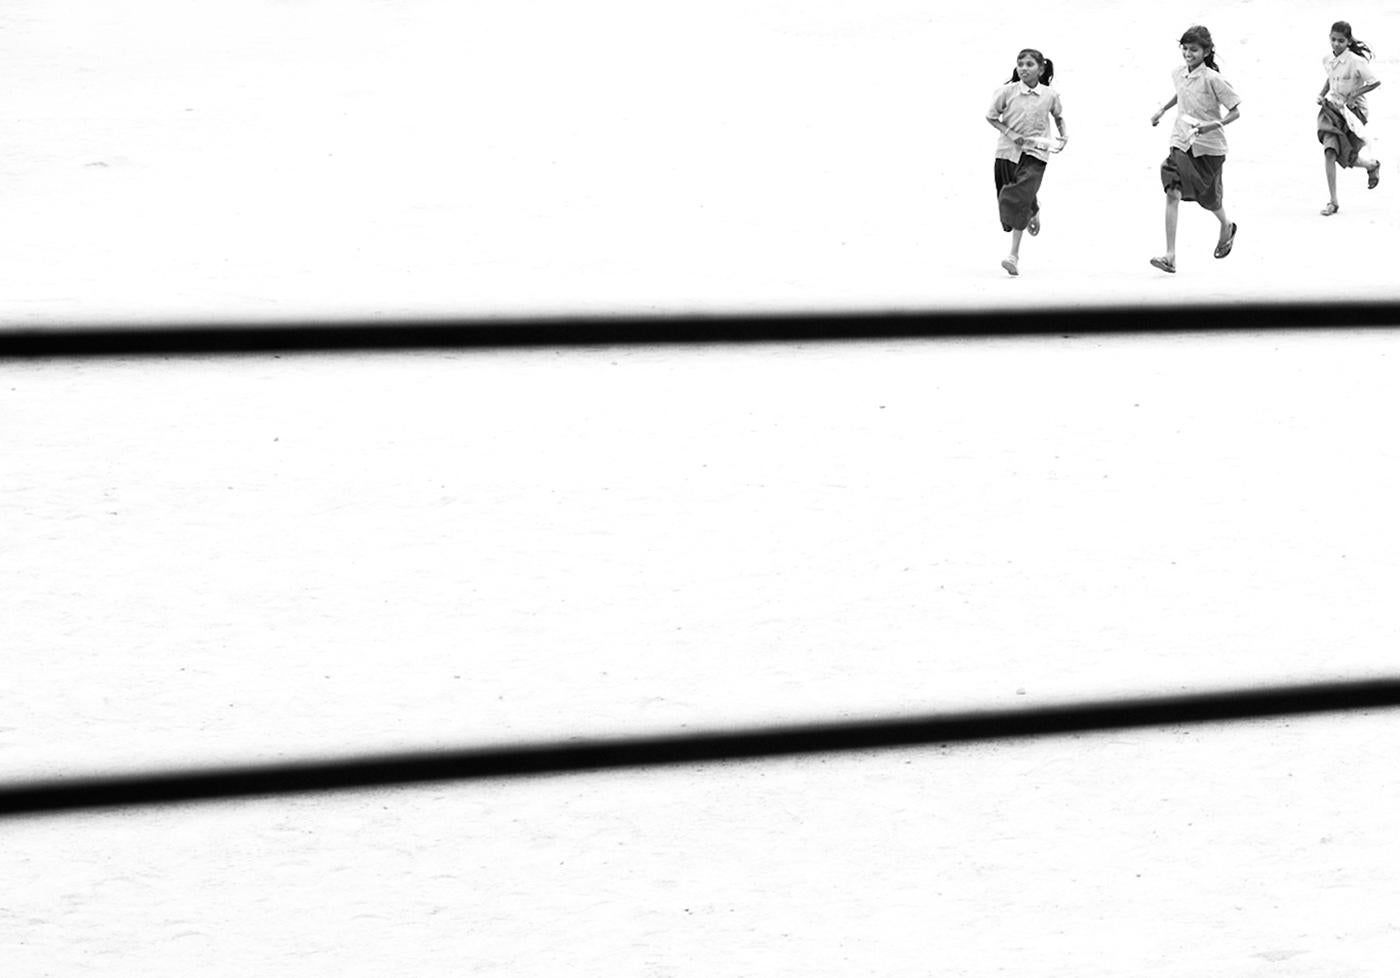 Running - Contemporary Minimalist And Symbolic Photography, Black And White